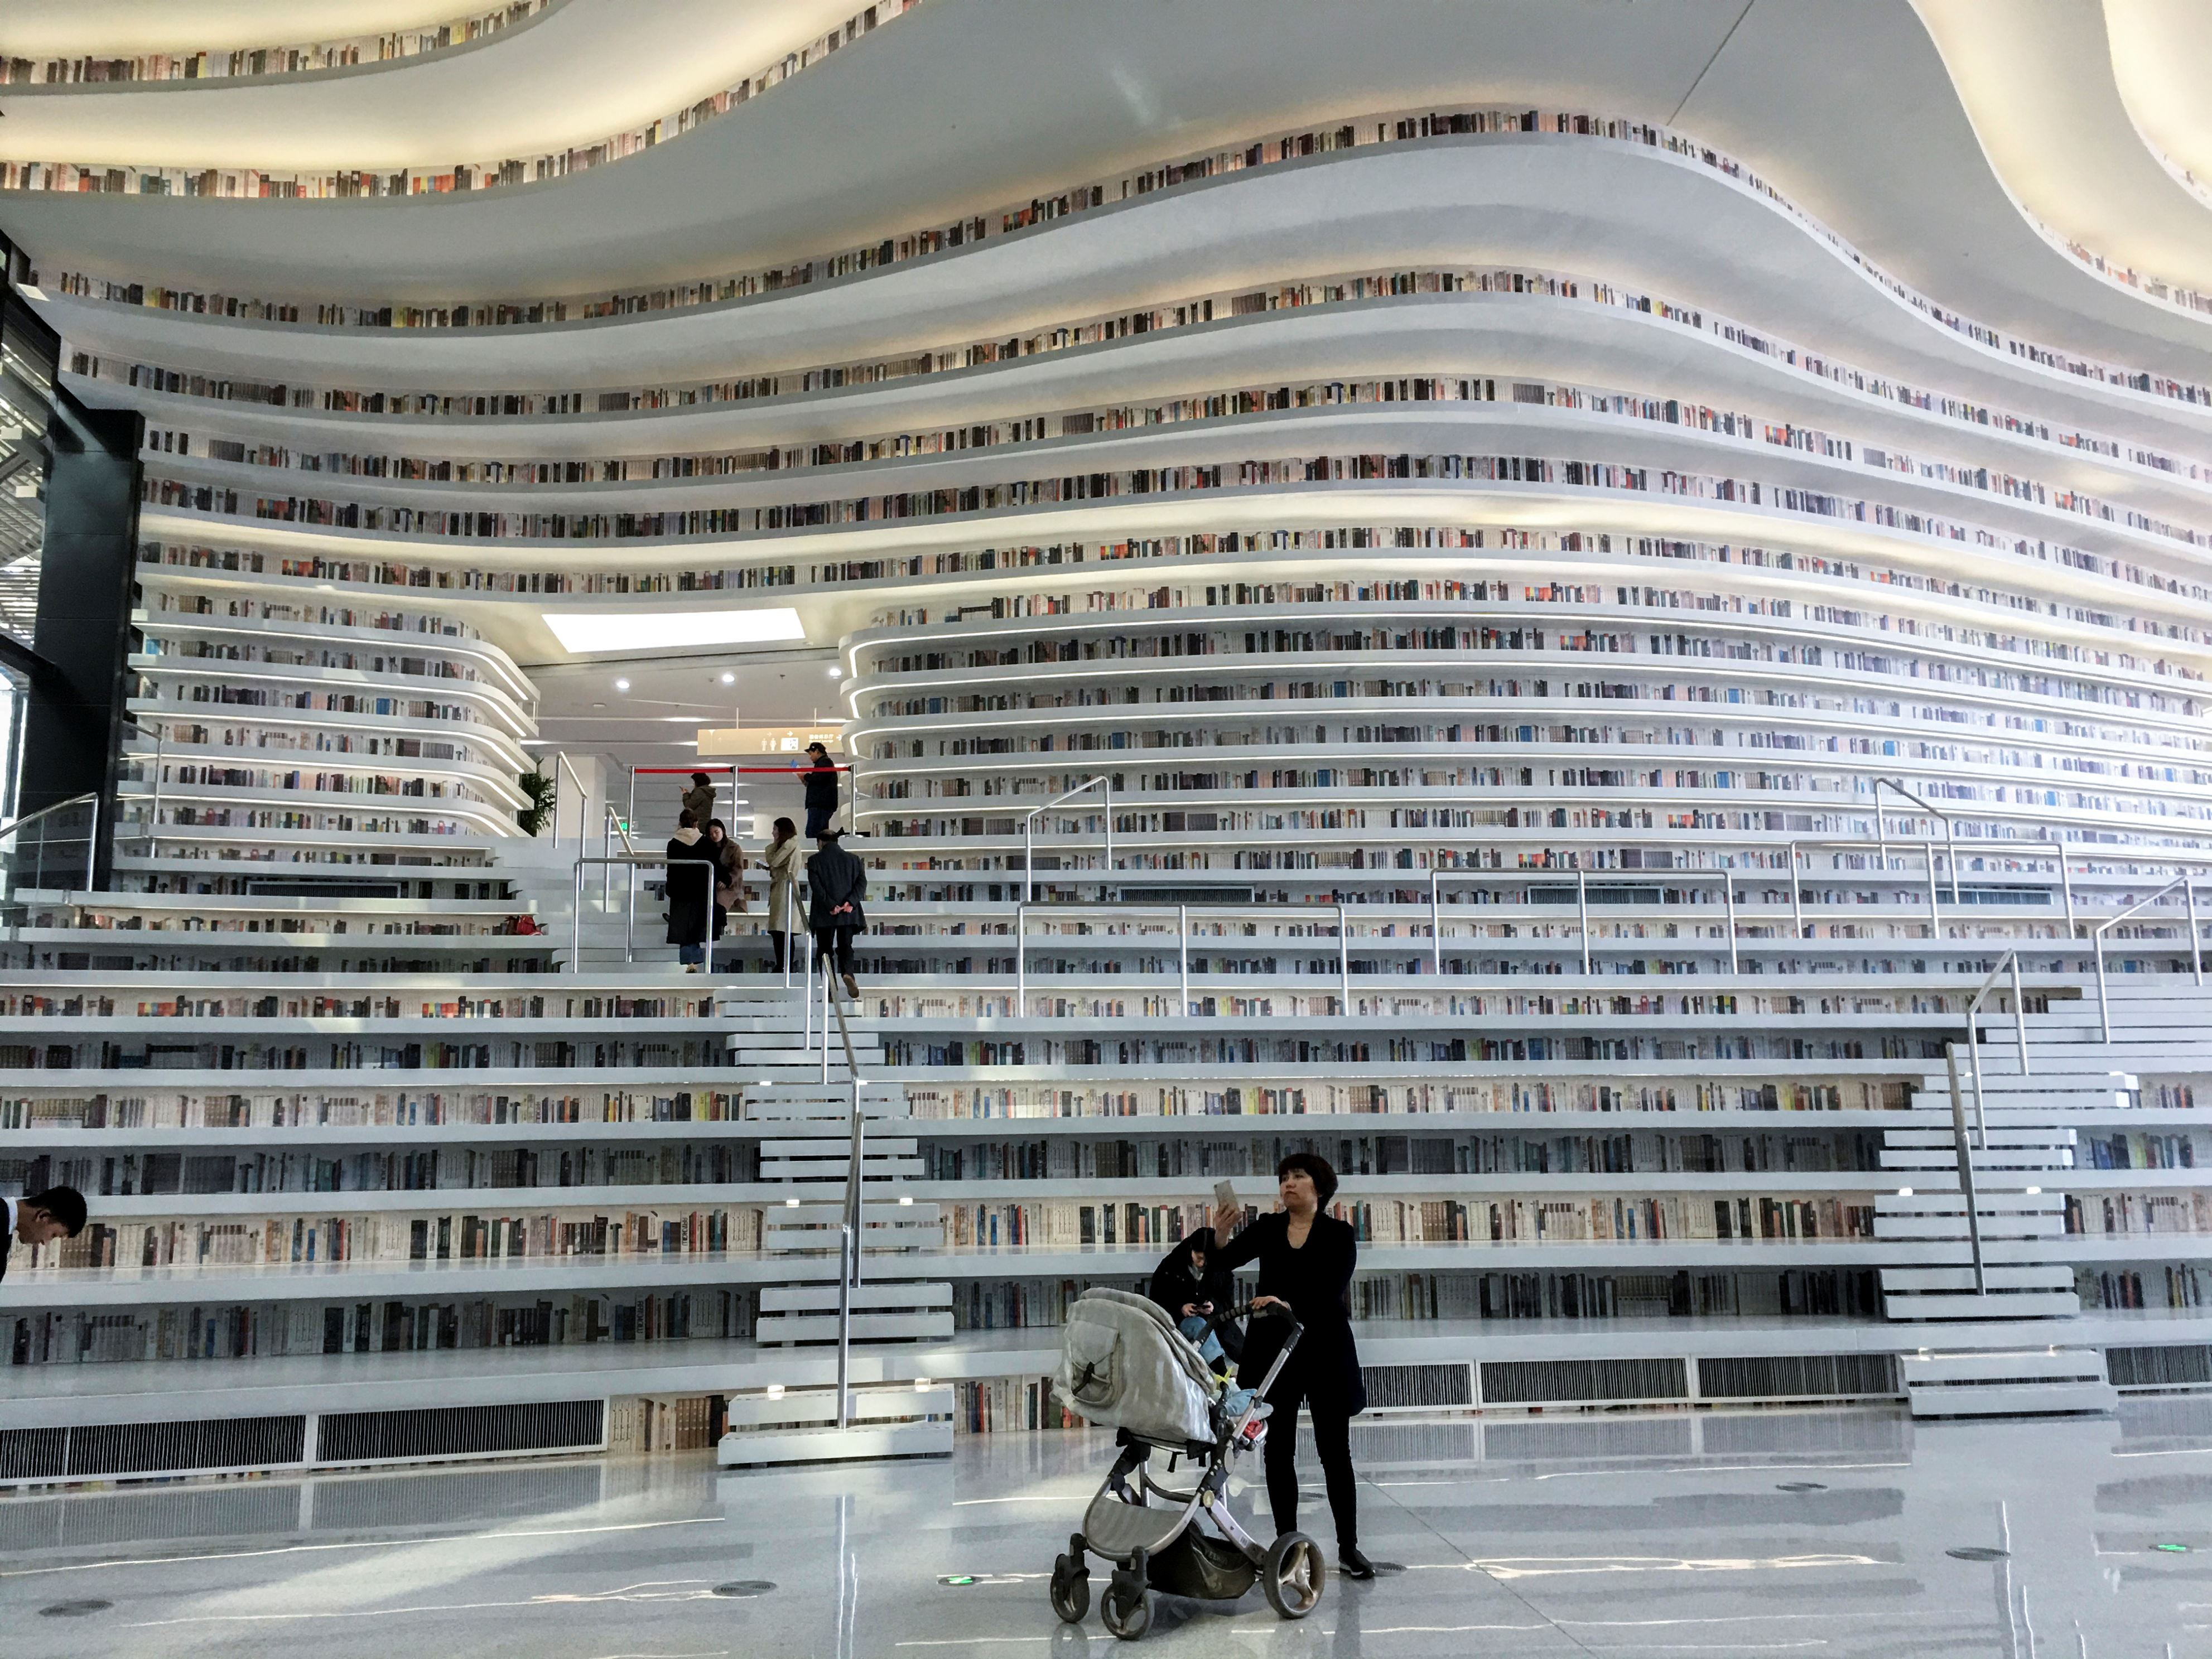 Slide 48 of 57: CAPTION: TIANJIN, CHINA - 2018/03/05: With a huge spherical multi-function hall and circle steps to the ceiling, Tianjin Binhai new area library is now a popular topic on social media and a new tourist attraction of this city, also called 'the most beautiful library in China'. (Photo by Zhang Peng/LightRocket via Getty Images)